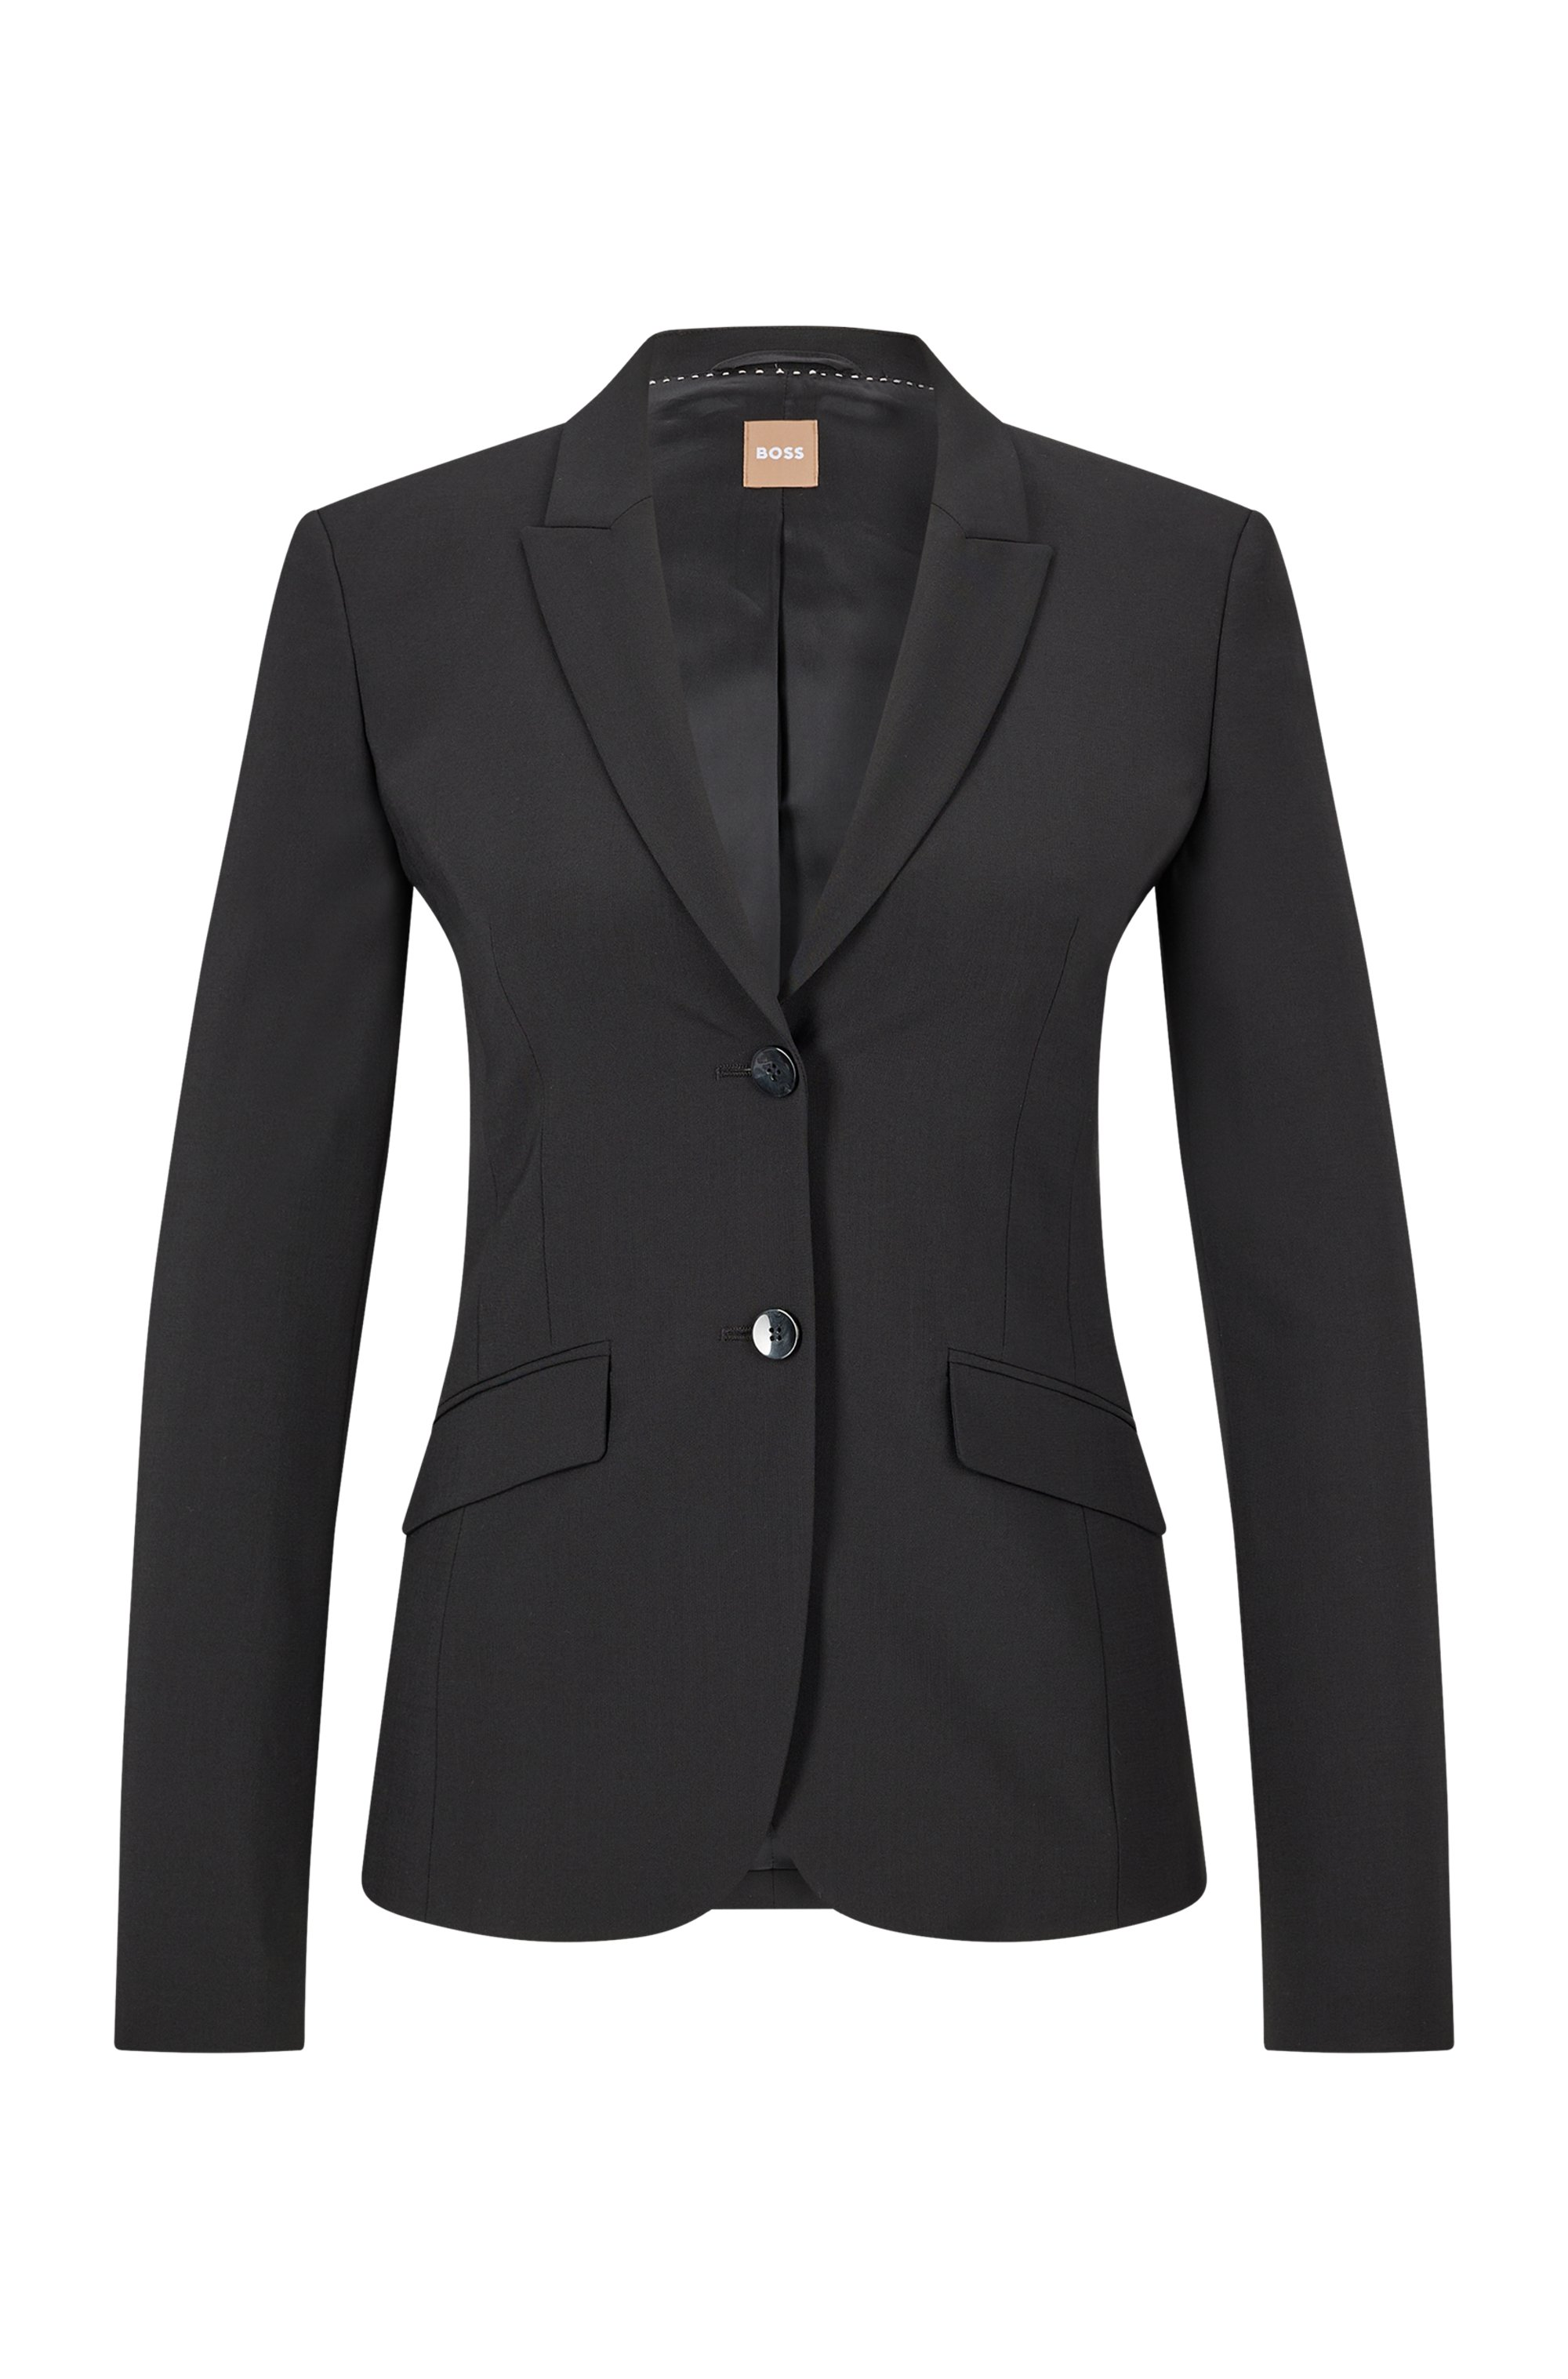 Regular-fit jacket in Italian stretch virgin wool, Black